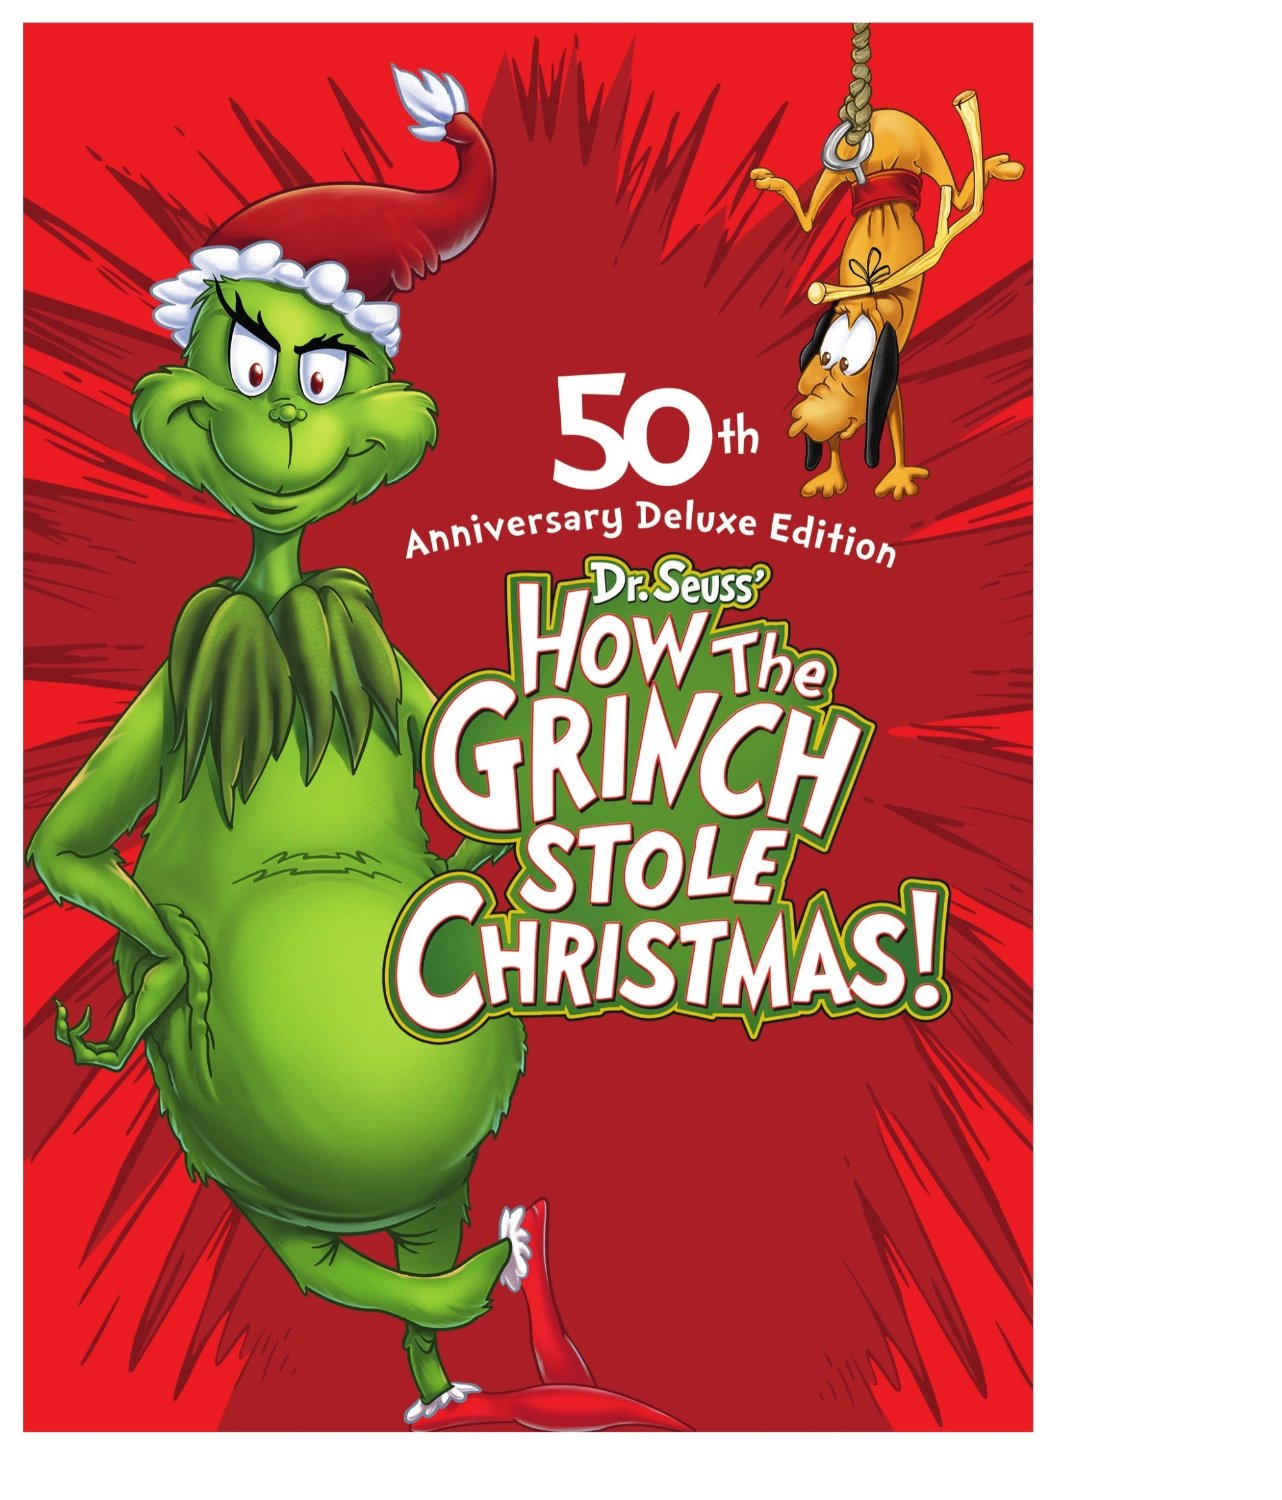 Dr Seuss How The Grinch Stole Christmas.Dr Seuss The Grinch Dr Seuss How The Grinch Stole Christmas Deluxe Edition